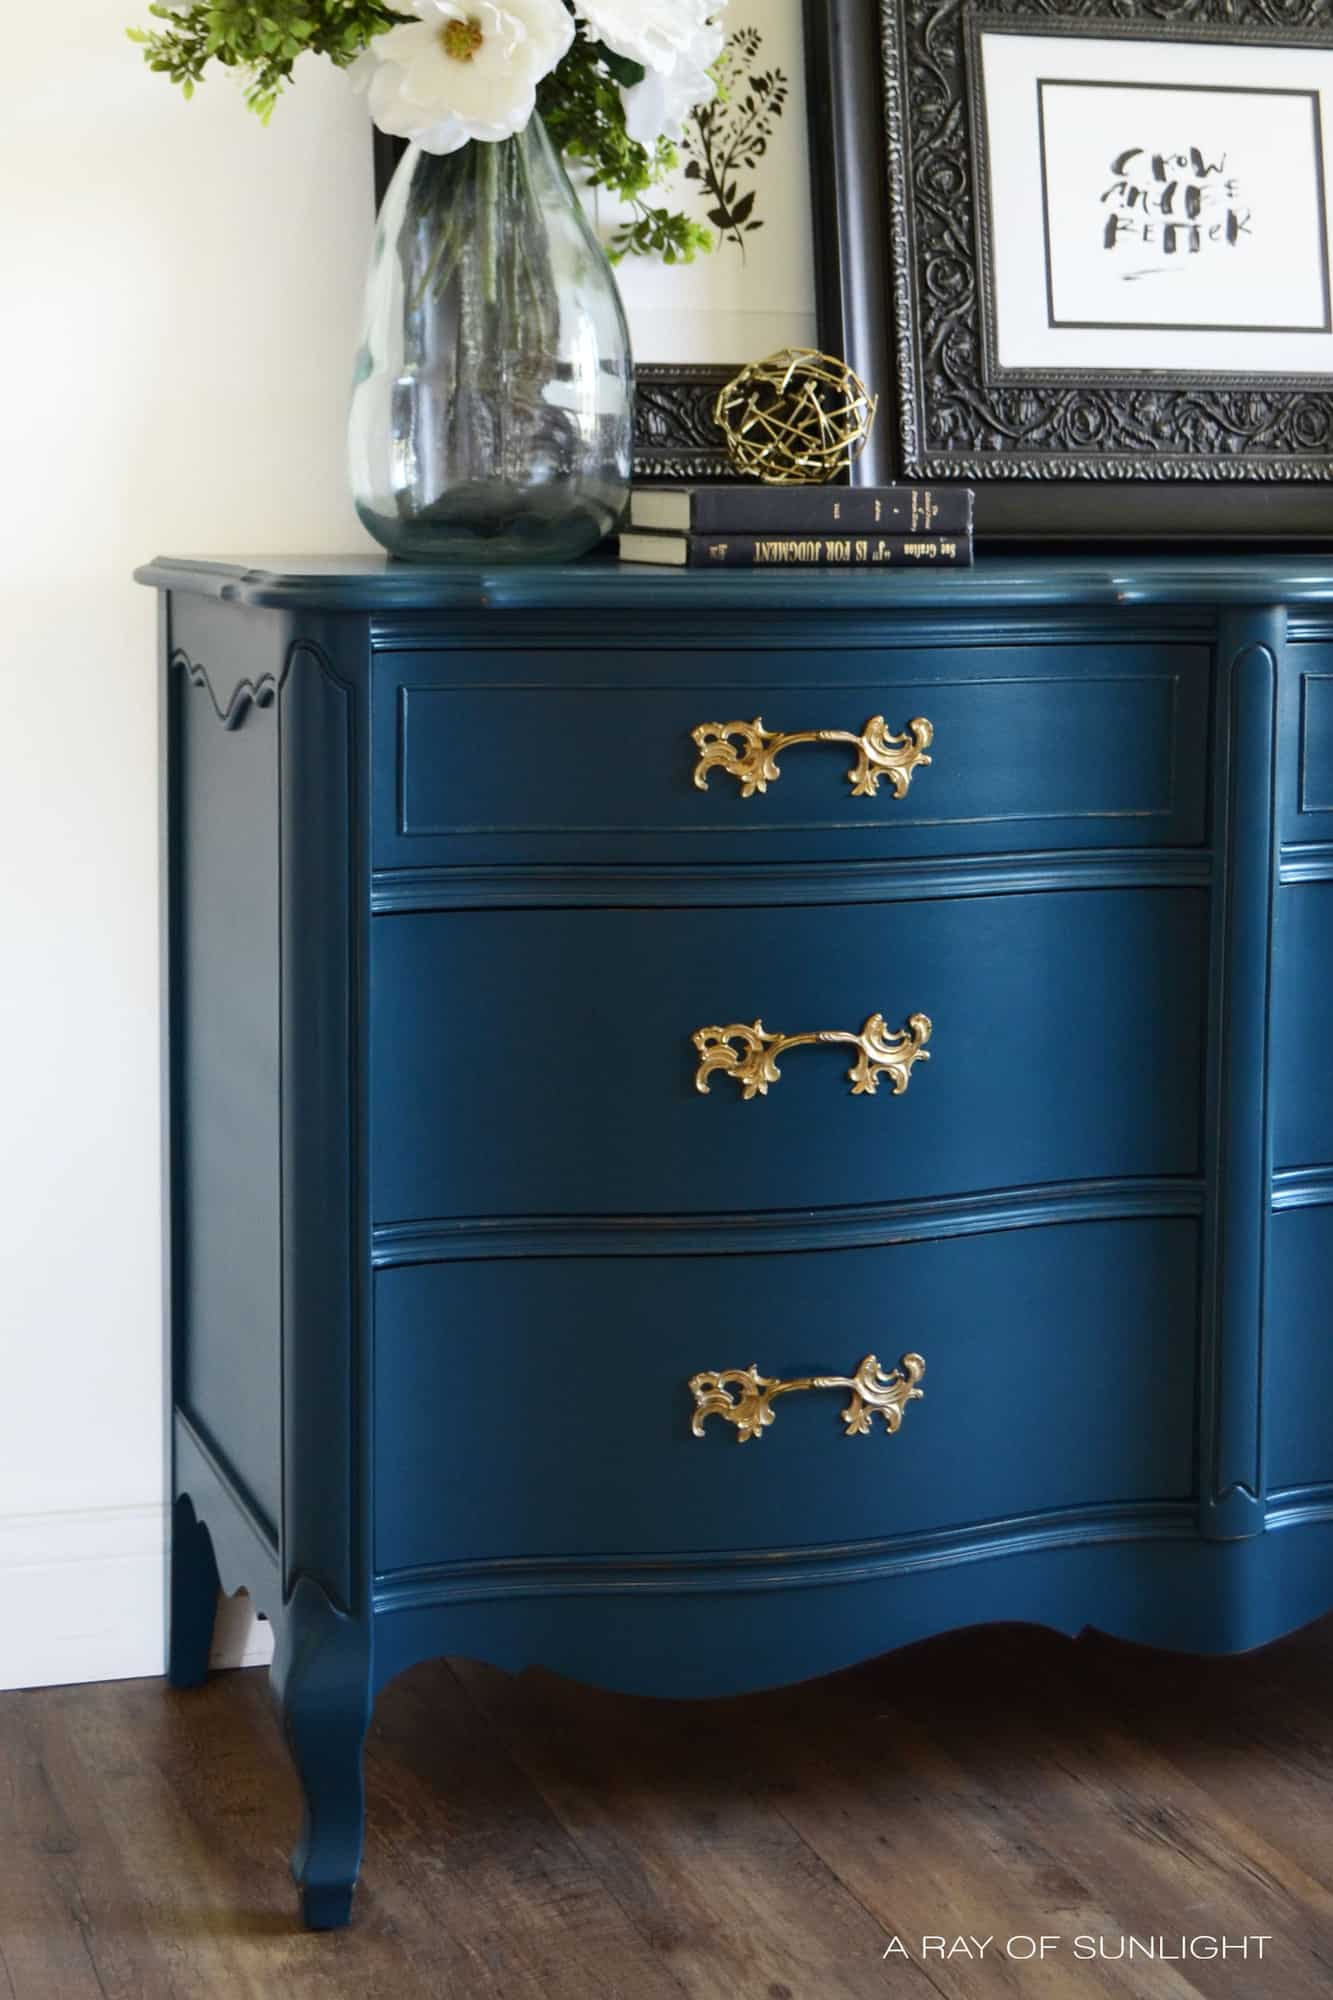 Navy Blue French Provincial Dresser with Gold Hardware in Country Chic Paint by A Ray of Sunlight 5